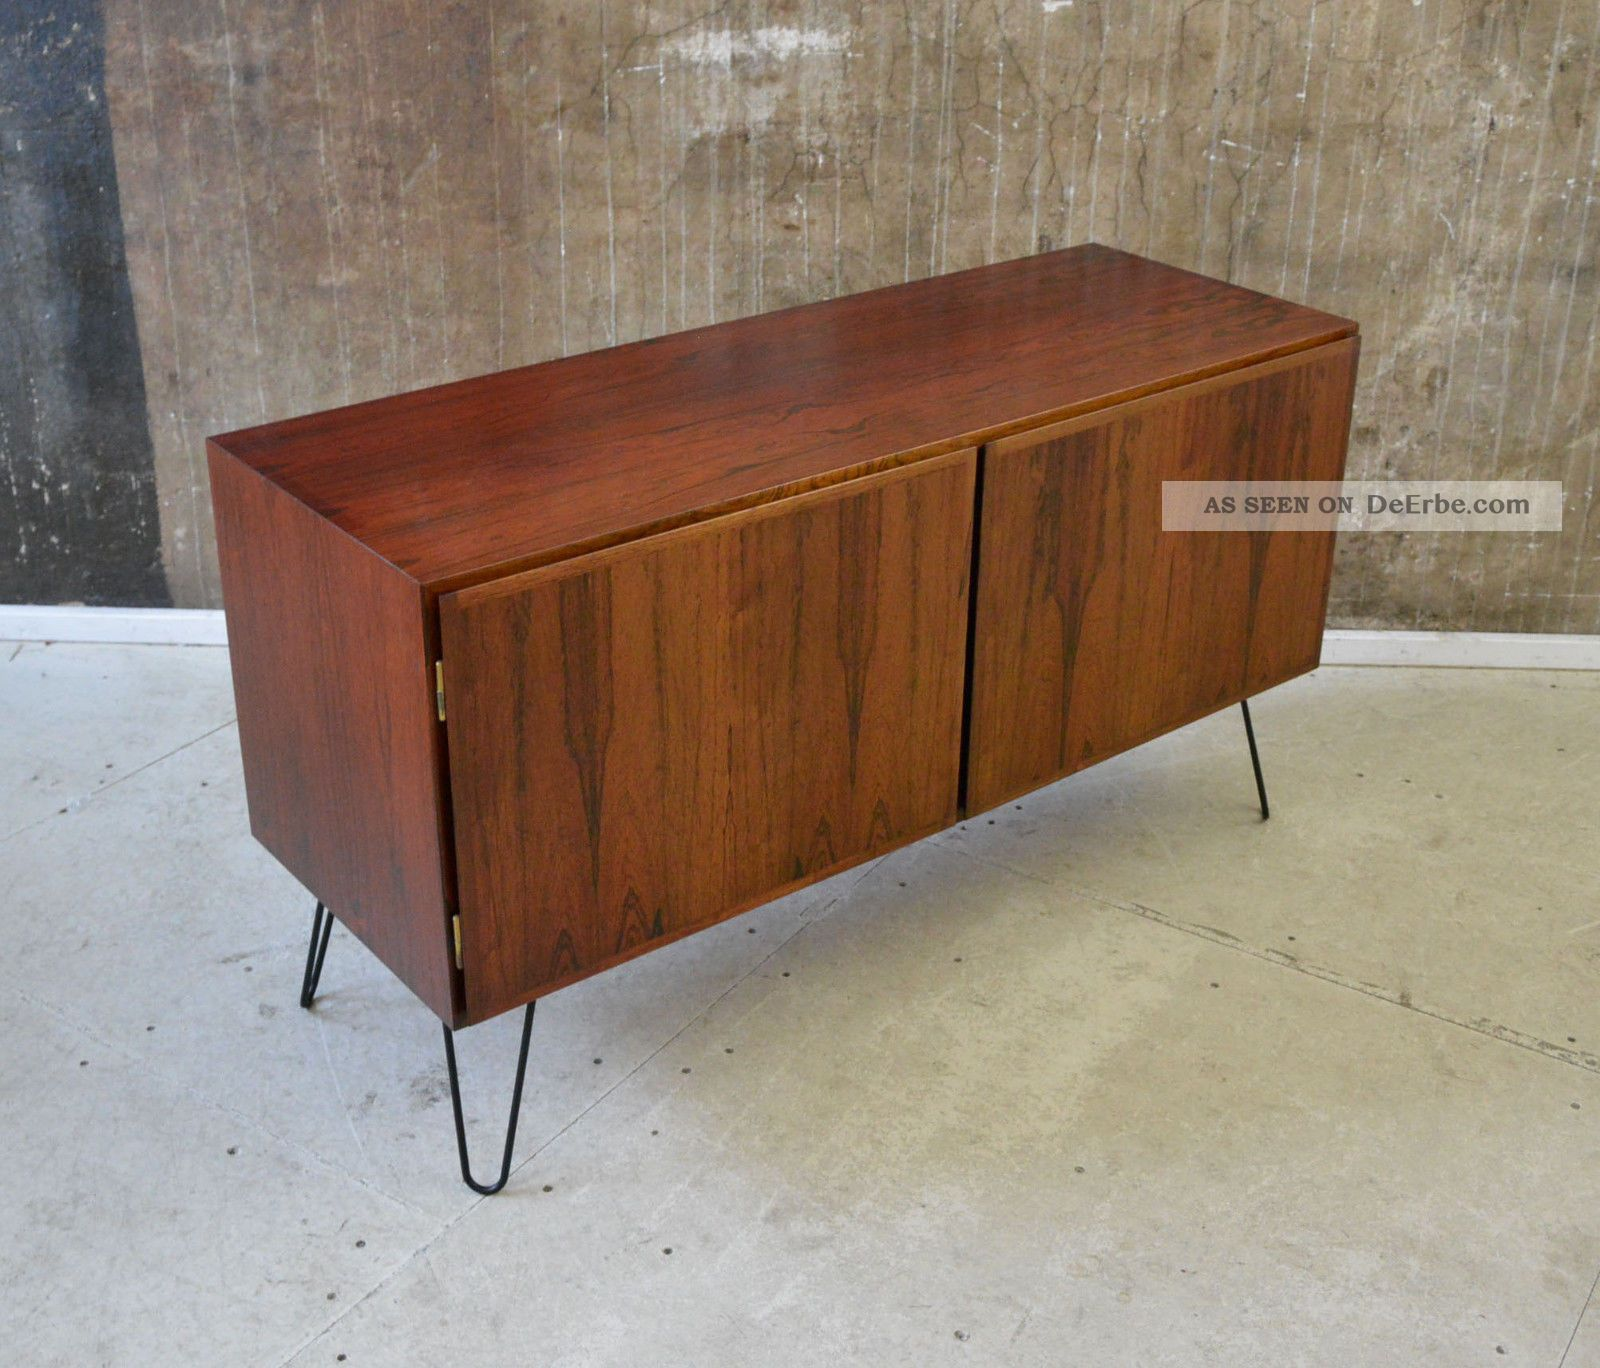 60er omann jun palisander sideboard kommode danish modern 60s rosewood cabinet. Black Bedroom Furniture Sets. Home Design Ideas